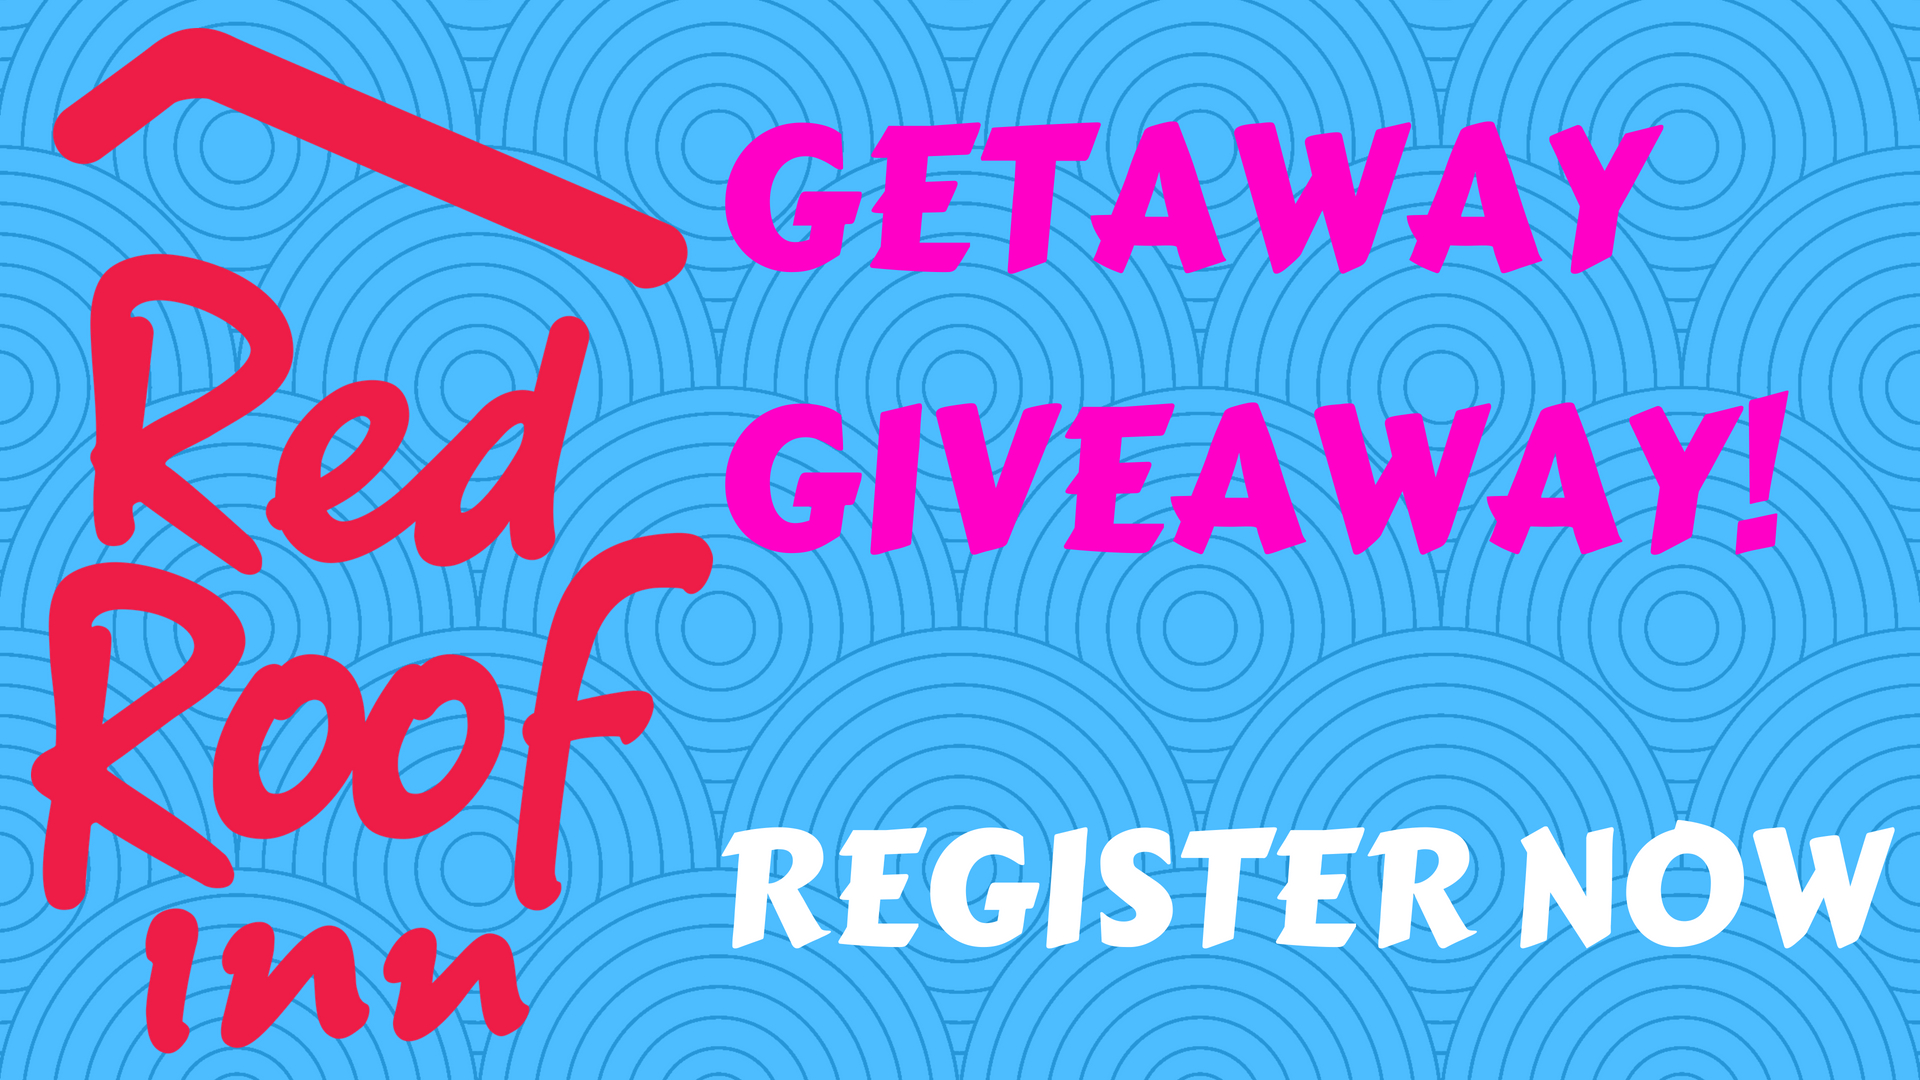 Red Roof Inn Getaway Giveaway!